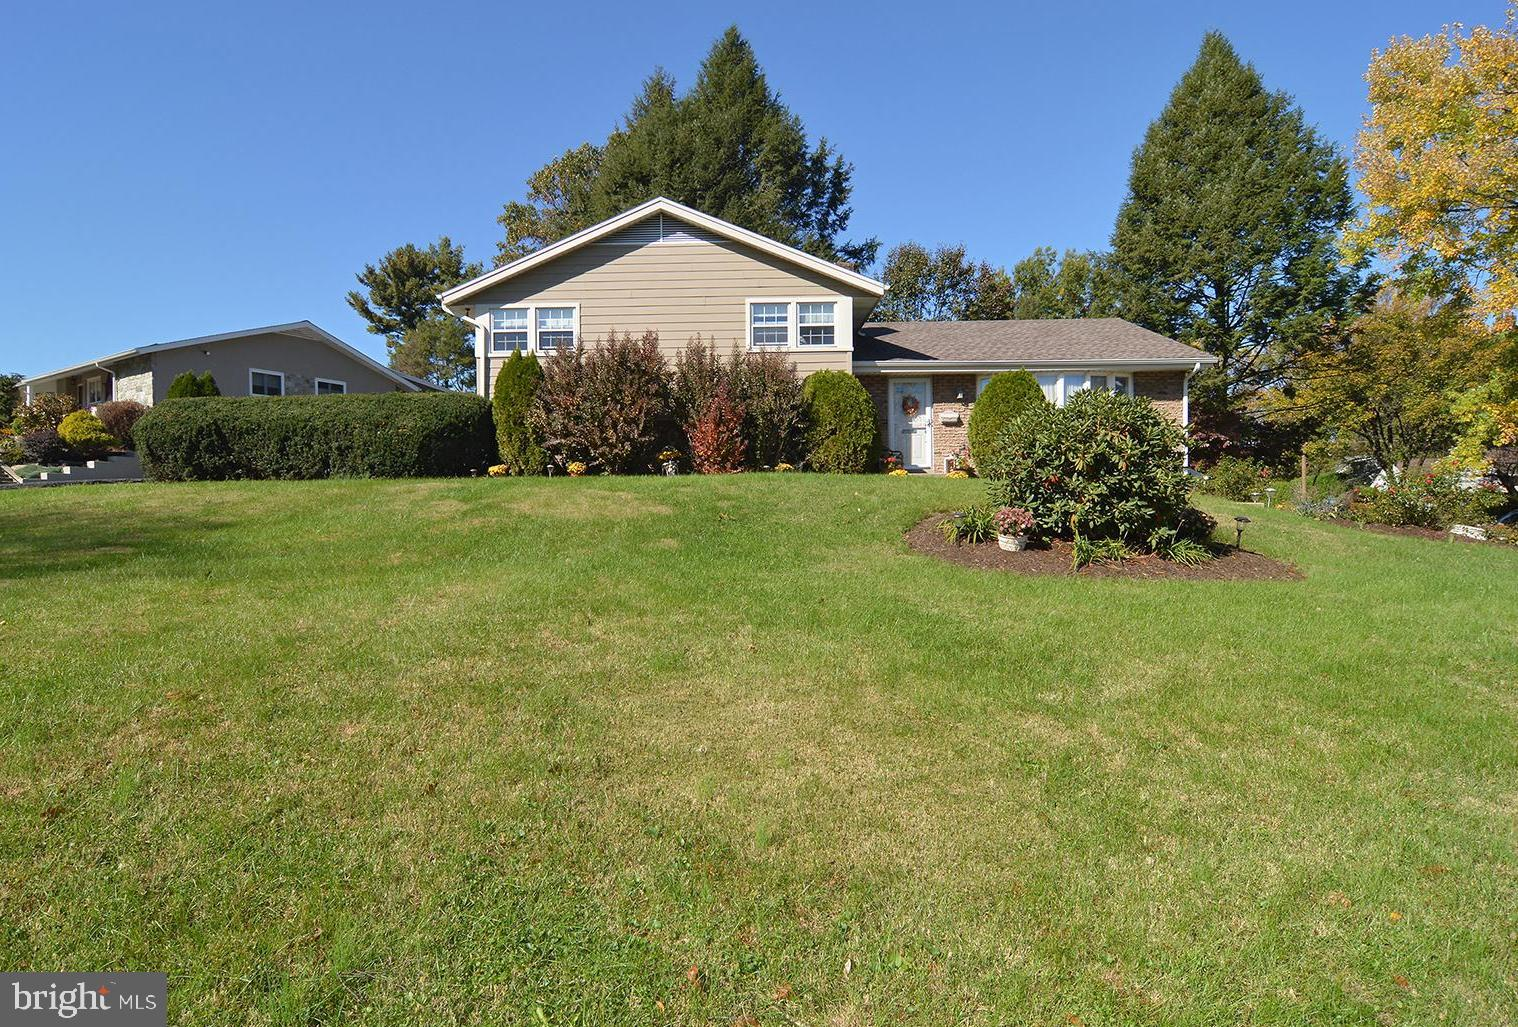 320 S PARK ROAD, READING, PA 19610